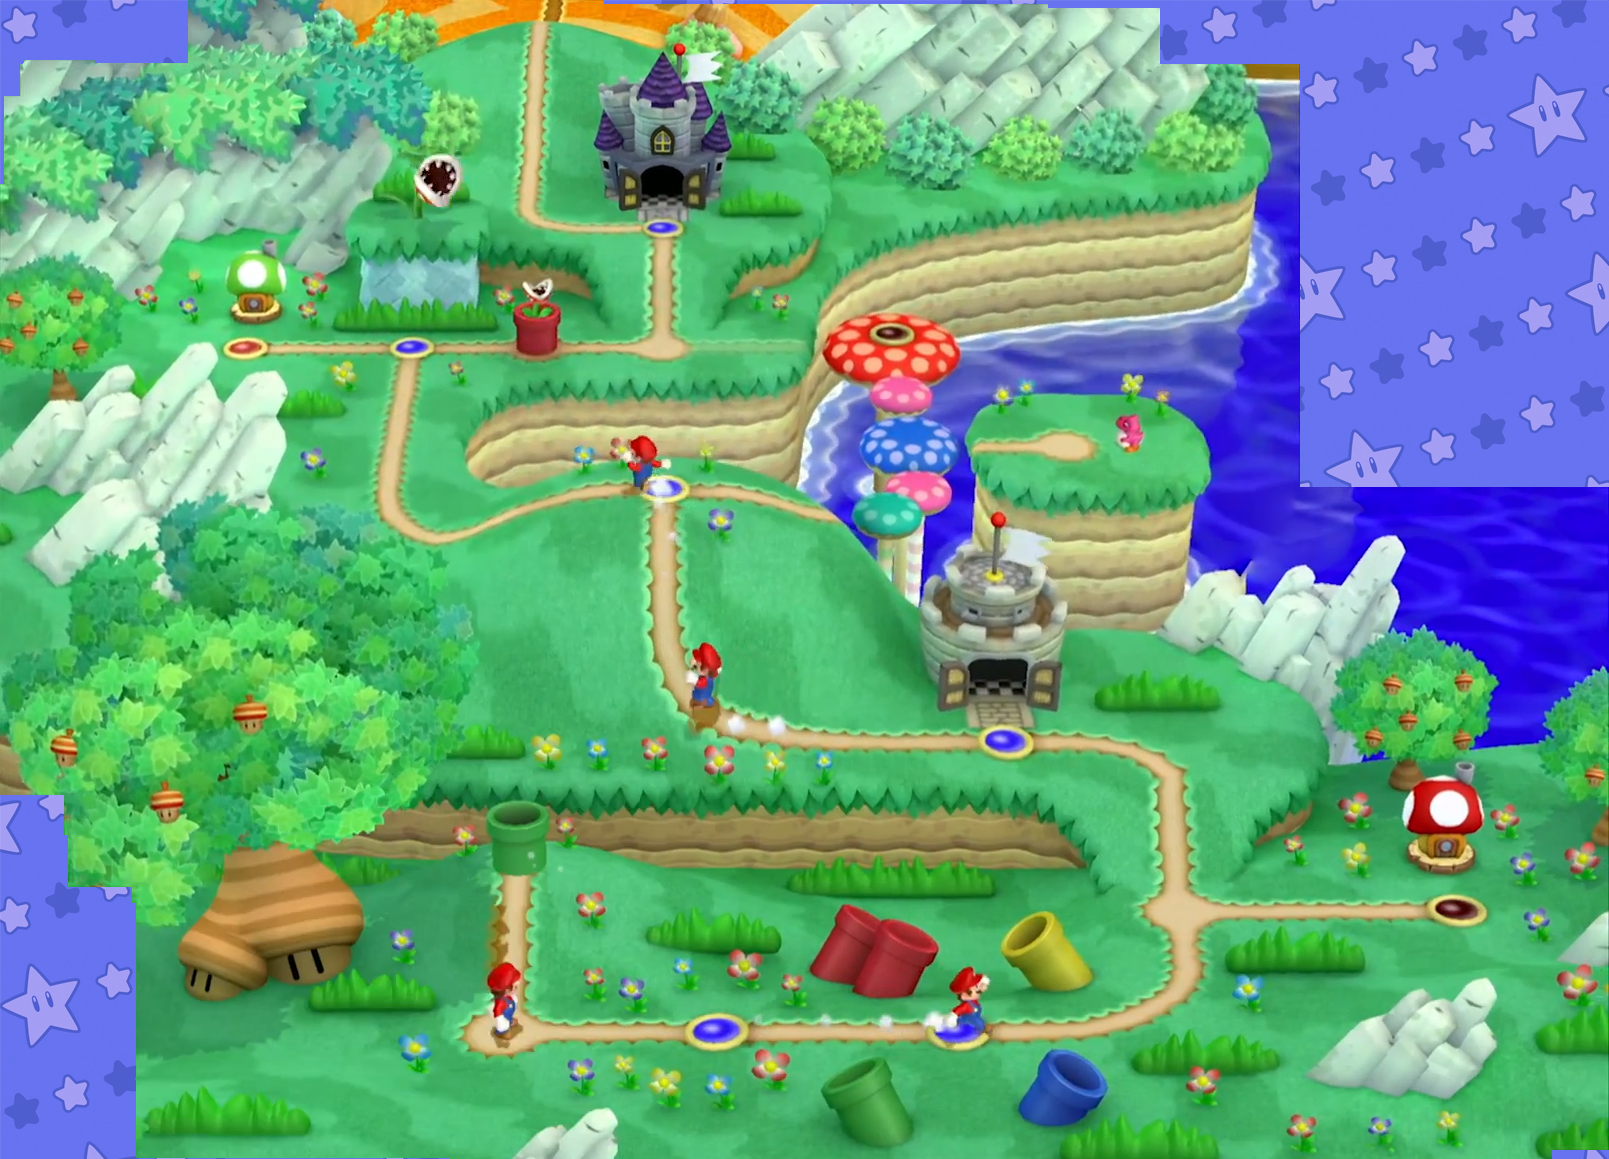 Acorn plains mariowiki fandom powered by wikia acornplainsmap the map of acorn plains located mushroom kingdom inhabitants piranha plants first game new super mario bros gumiabroncs Gallery